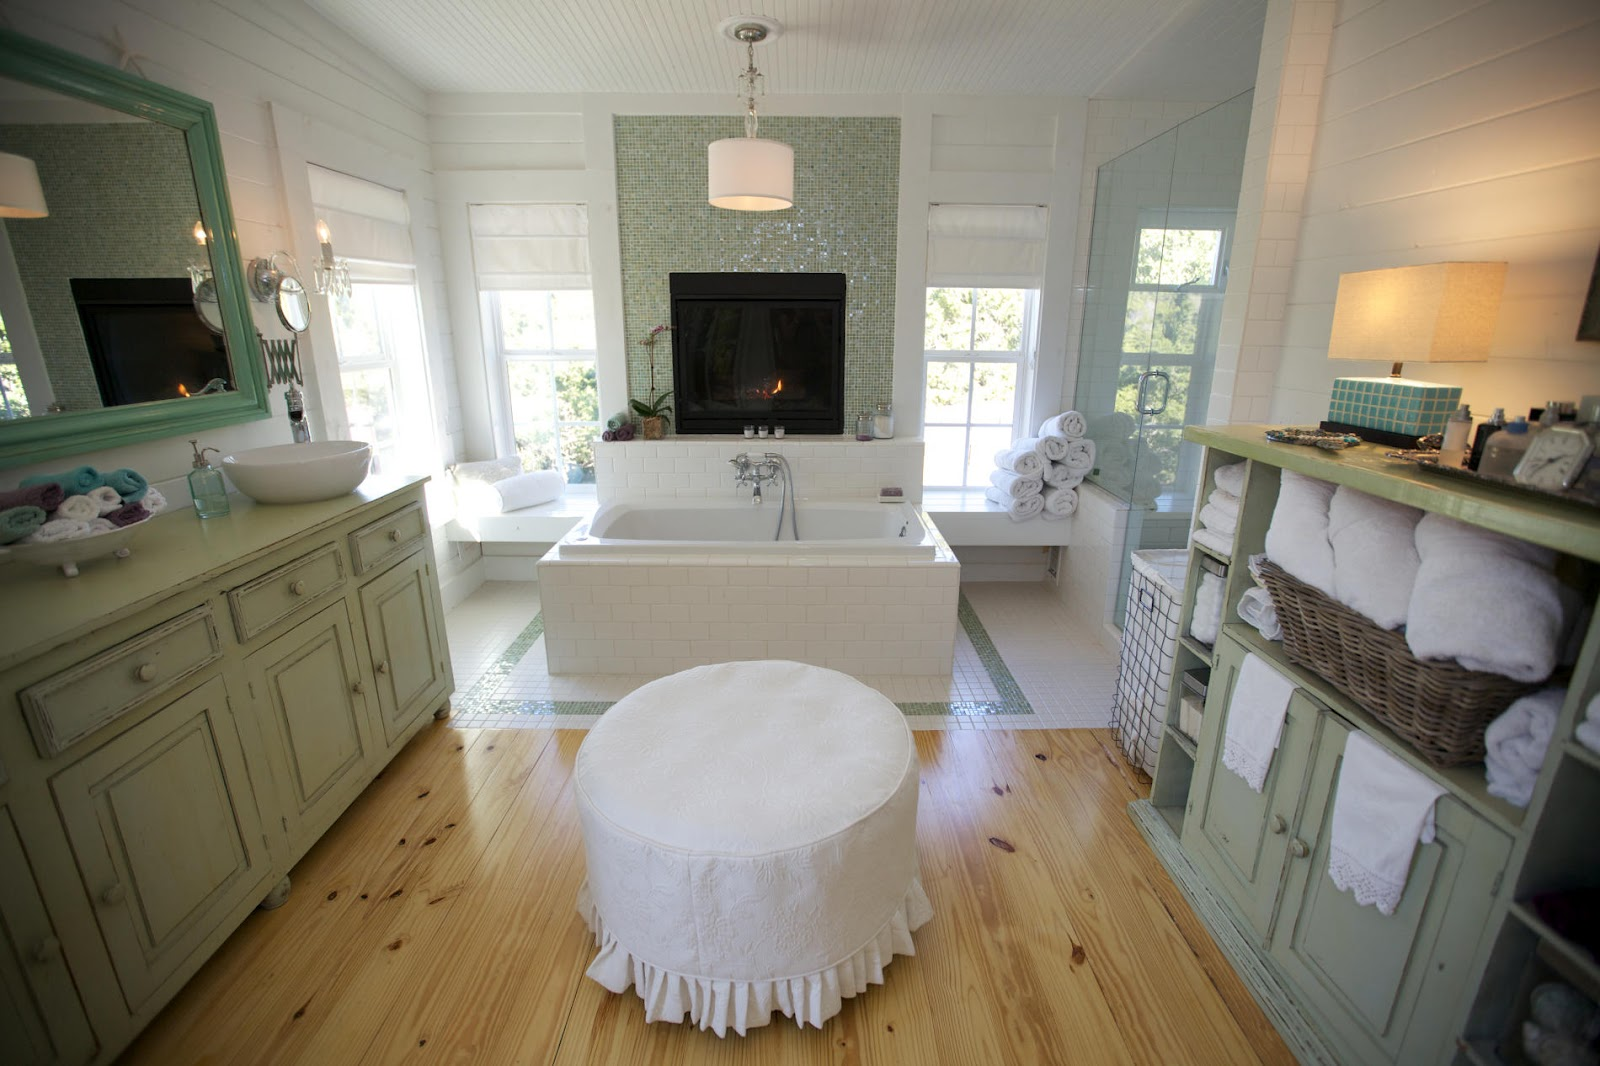 To da loos seafoam green country bathroom retreat for Country bathroom ideas